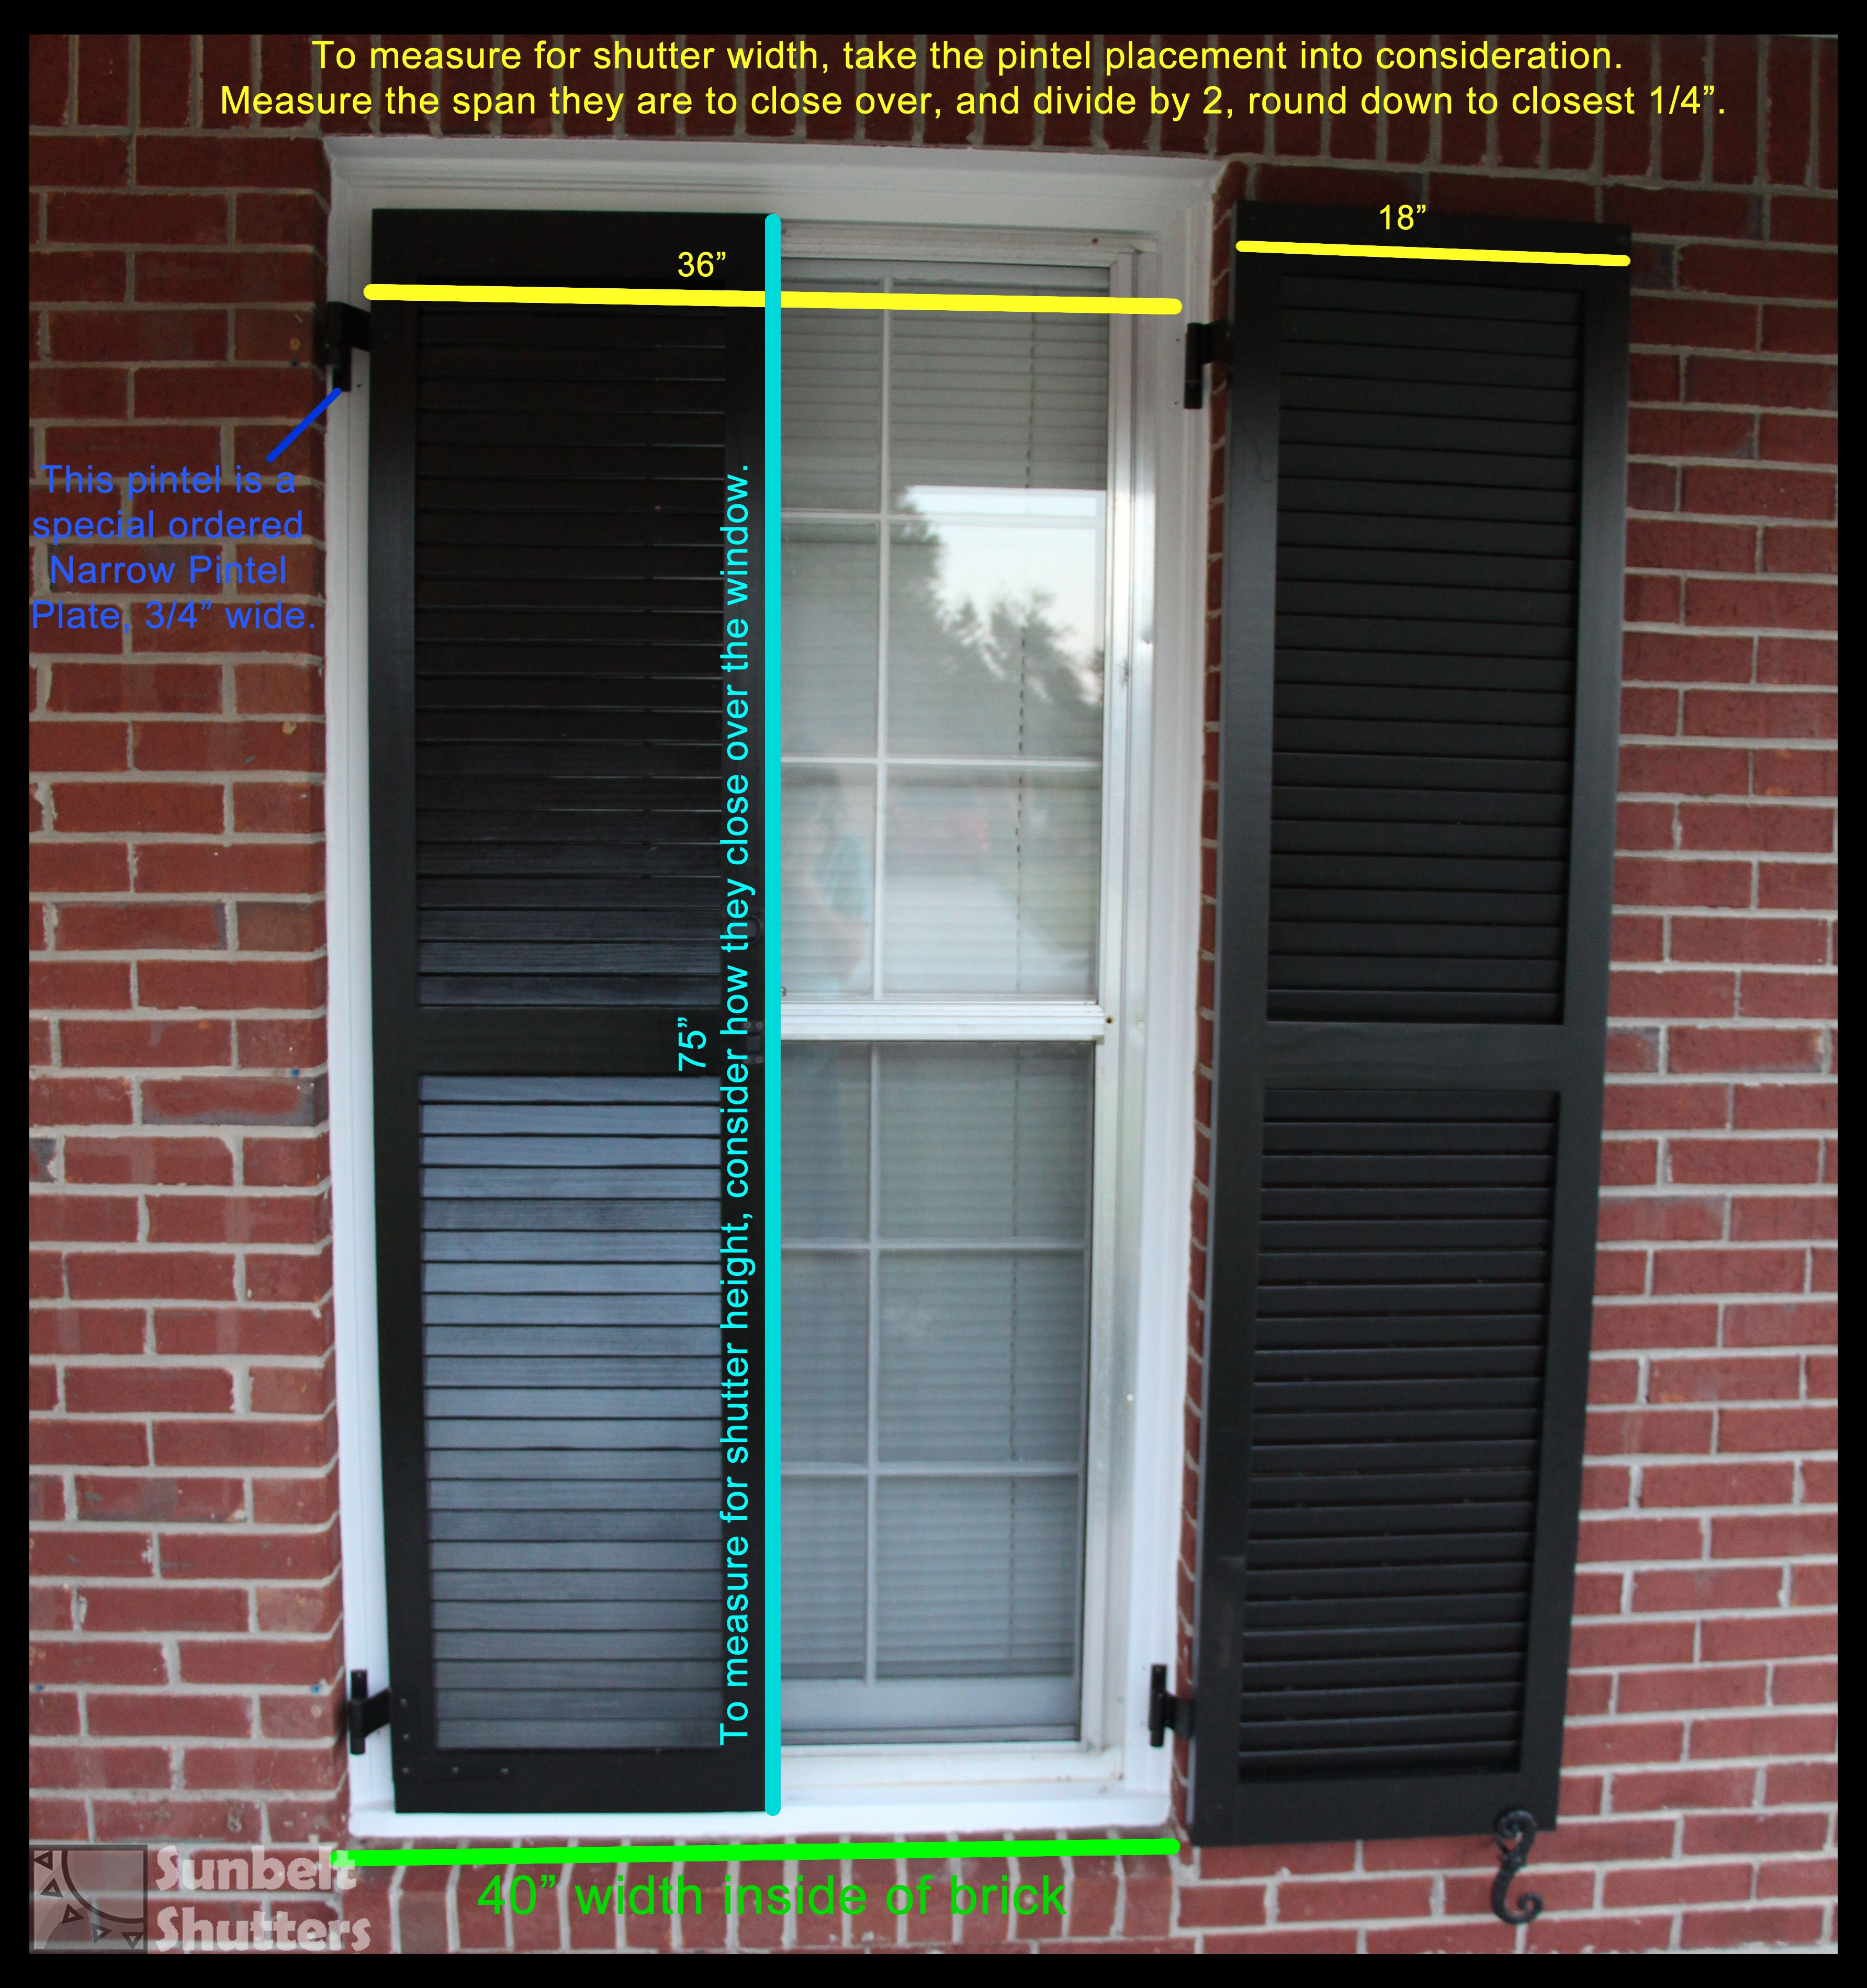 This Example Shows How To Measure For Functional Shutters That